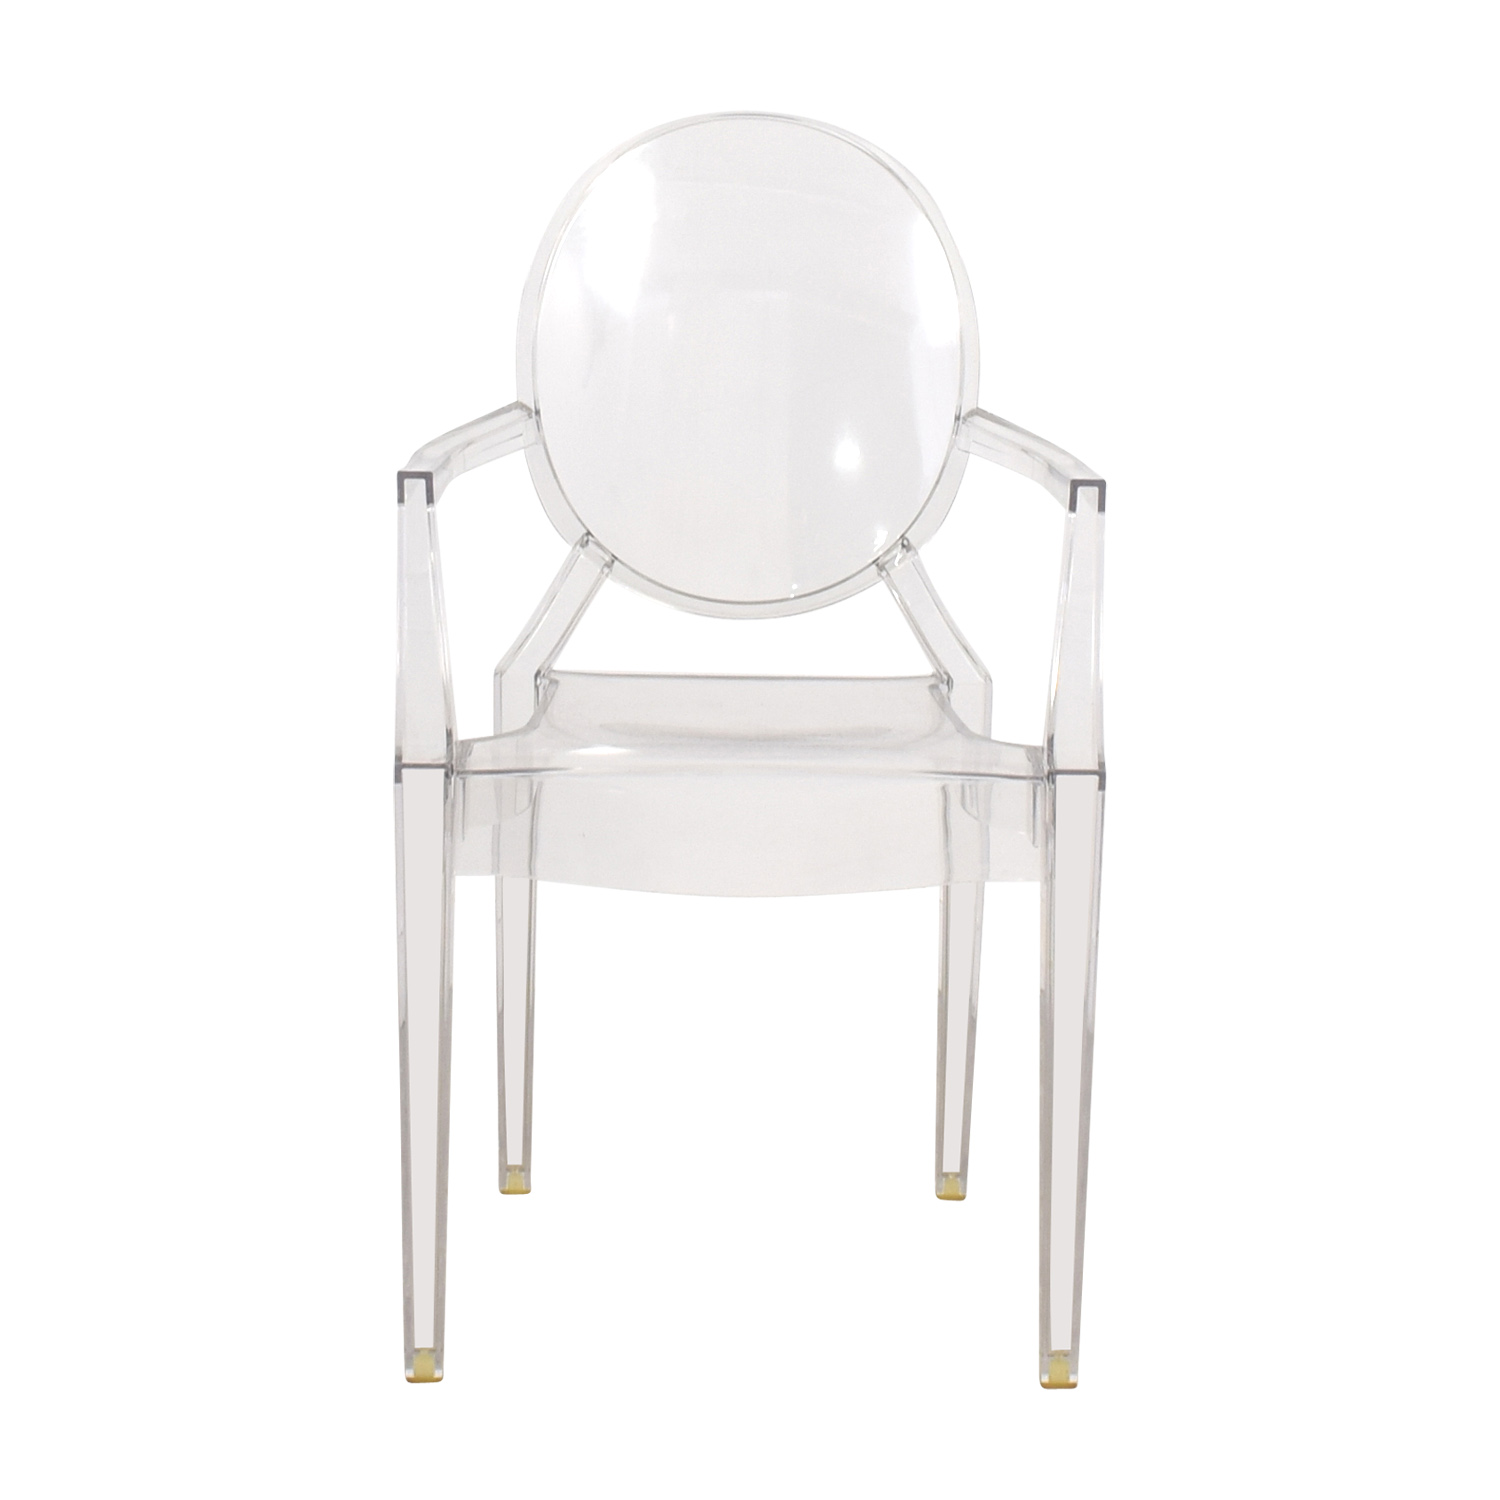 68% OFF - Kartell Kartell Louis Ghost Chair / Chairs